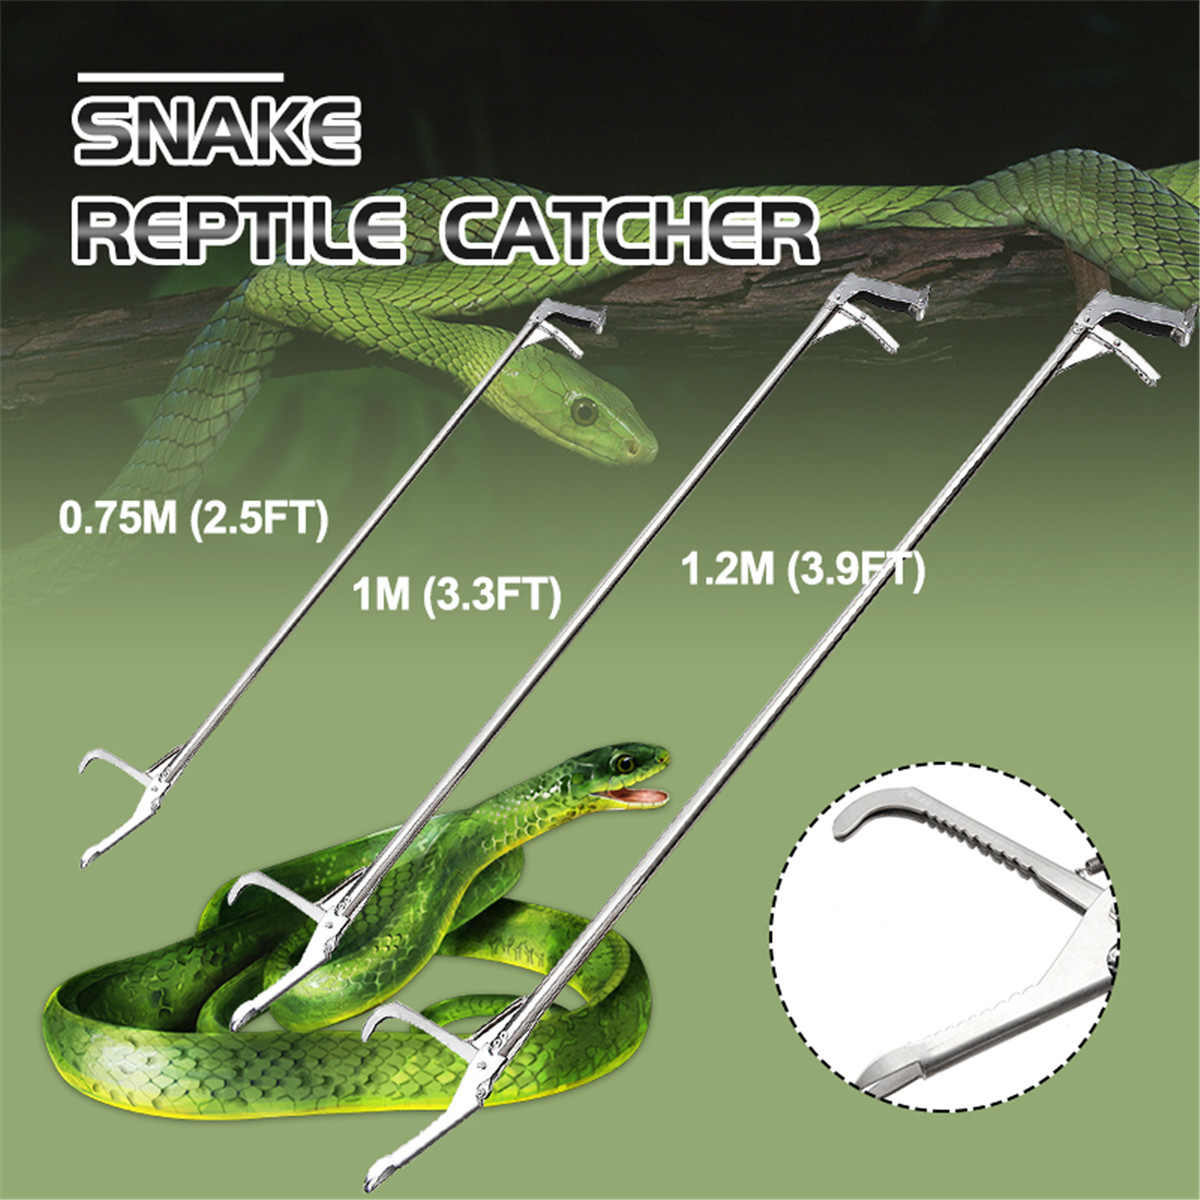 120/100/75cm Professional Reptile Snake Catcher Tongs Stick Grabber Stainless Steel Wide Jaw Tool Heavy Pest Control Product